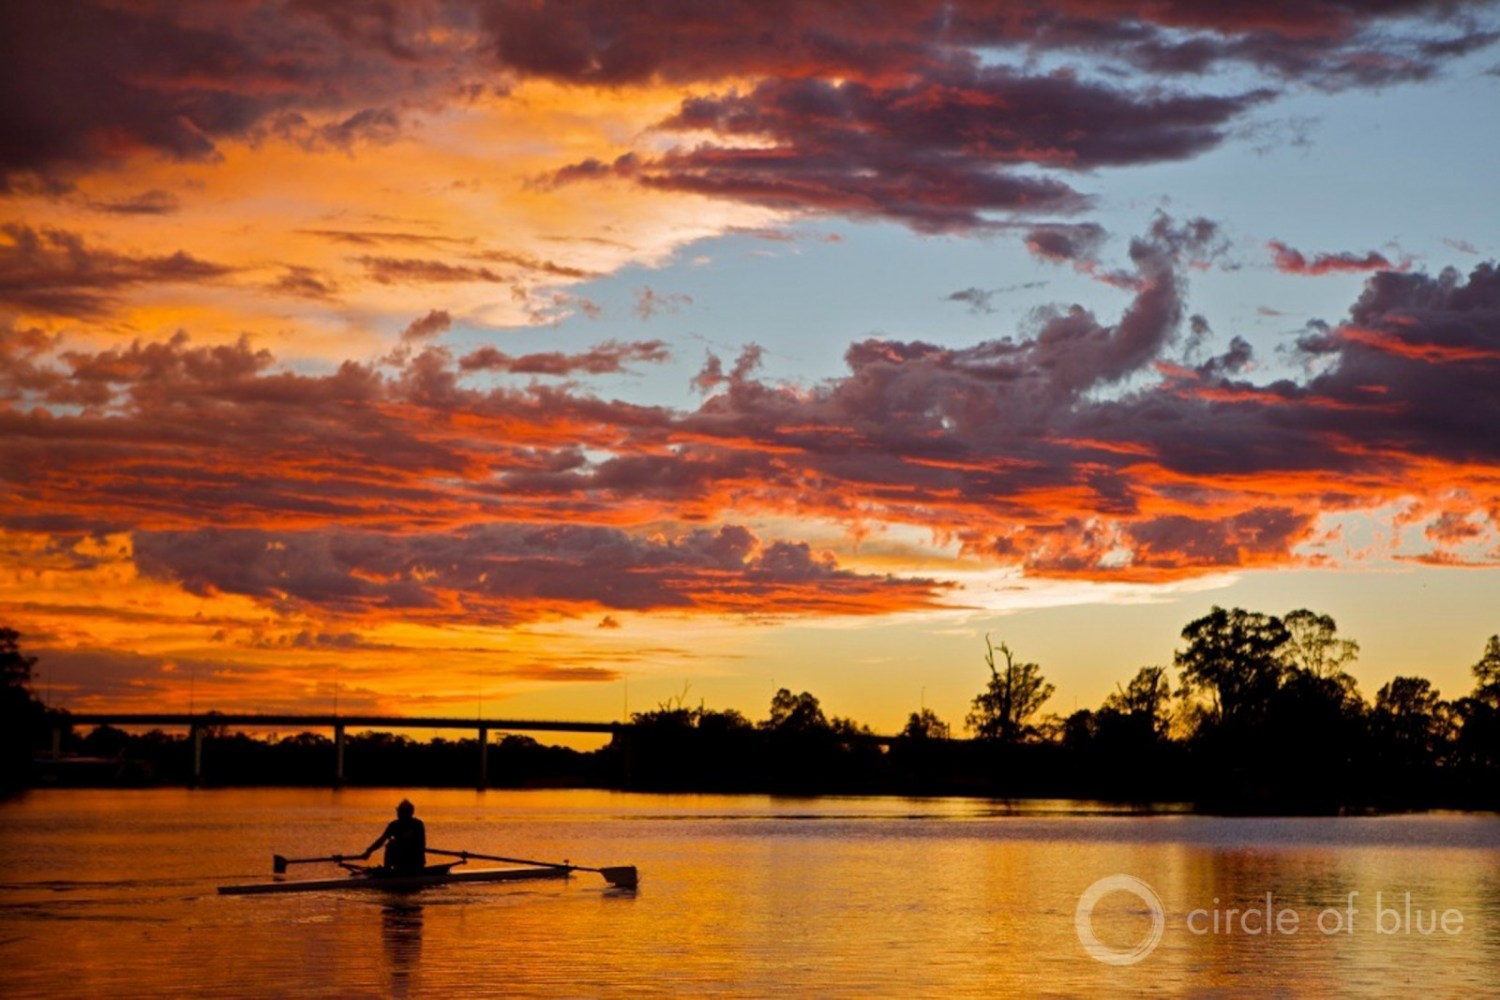 A rower in Mildura, Victoria enjoys a tranquil Murray River. Driven by heat and dry weather, a bloom of potentially toxic algae covers more than 500 kilometers of the river's water this year. Photo © J. Carl Ganter / Circle of Blue